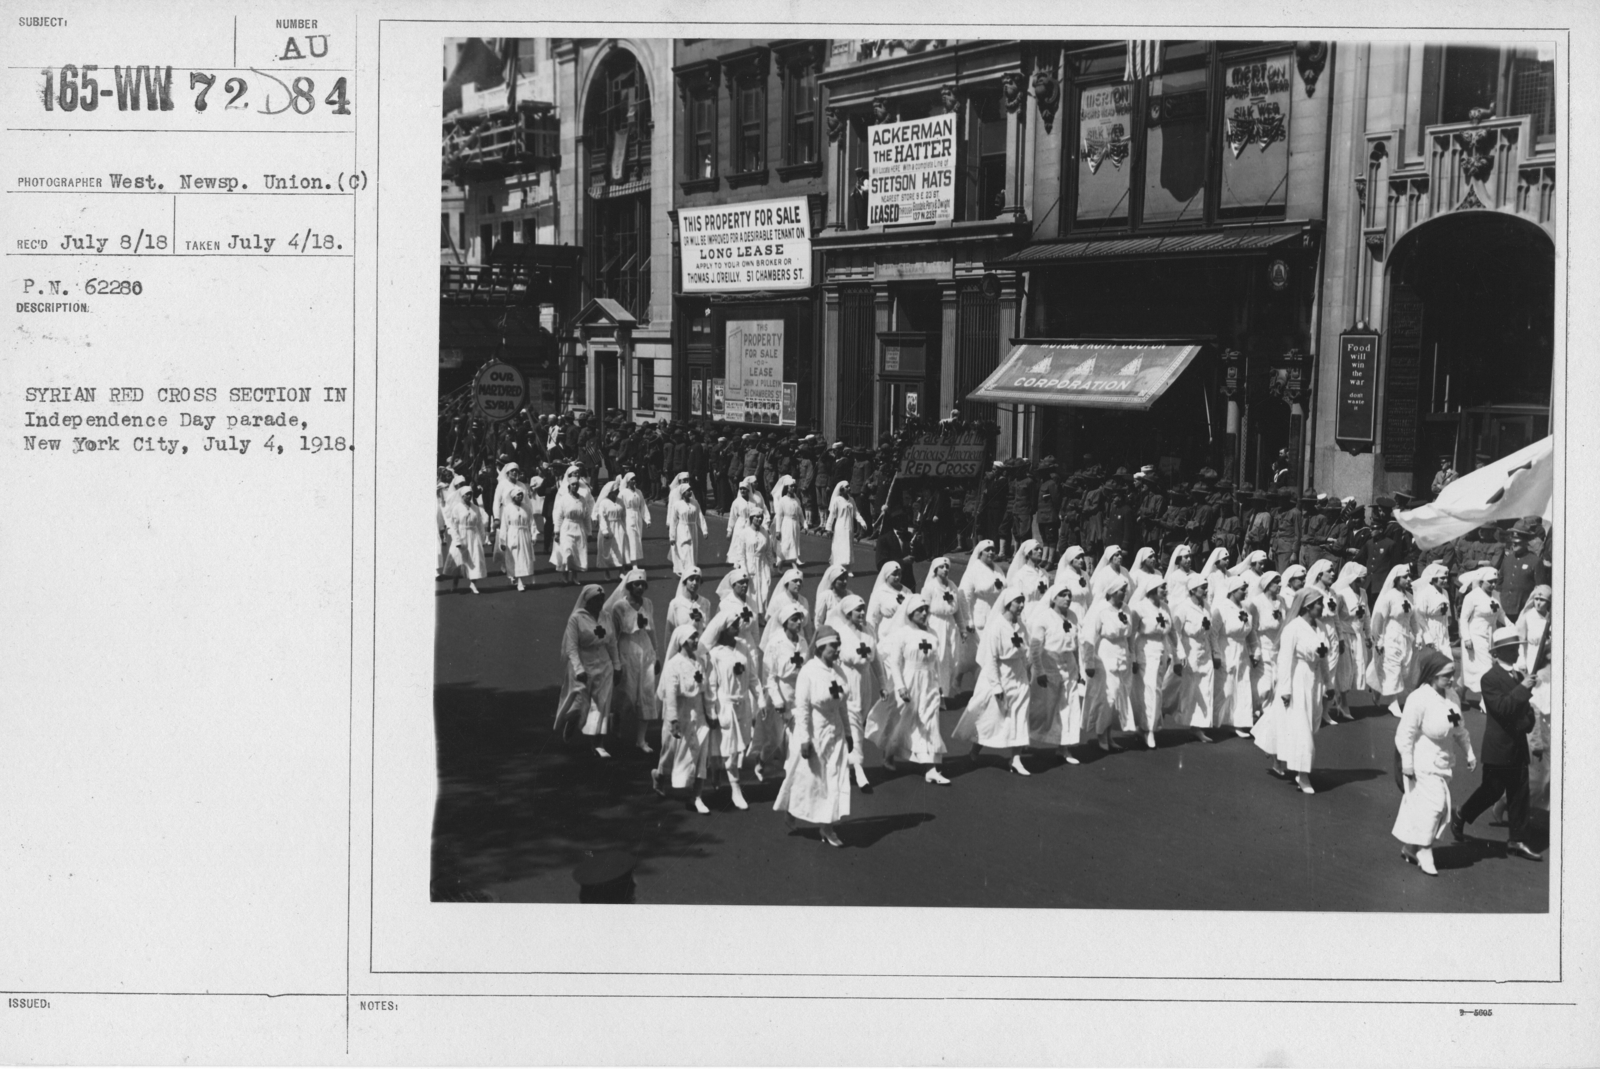 Ceremonies - Independence Day, 1918 - Syrian Red Cross section in Independence Day parade, New York City, July 4, 1918